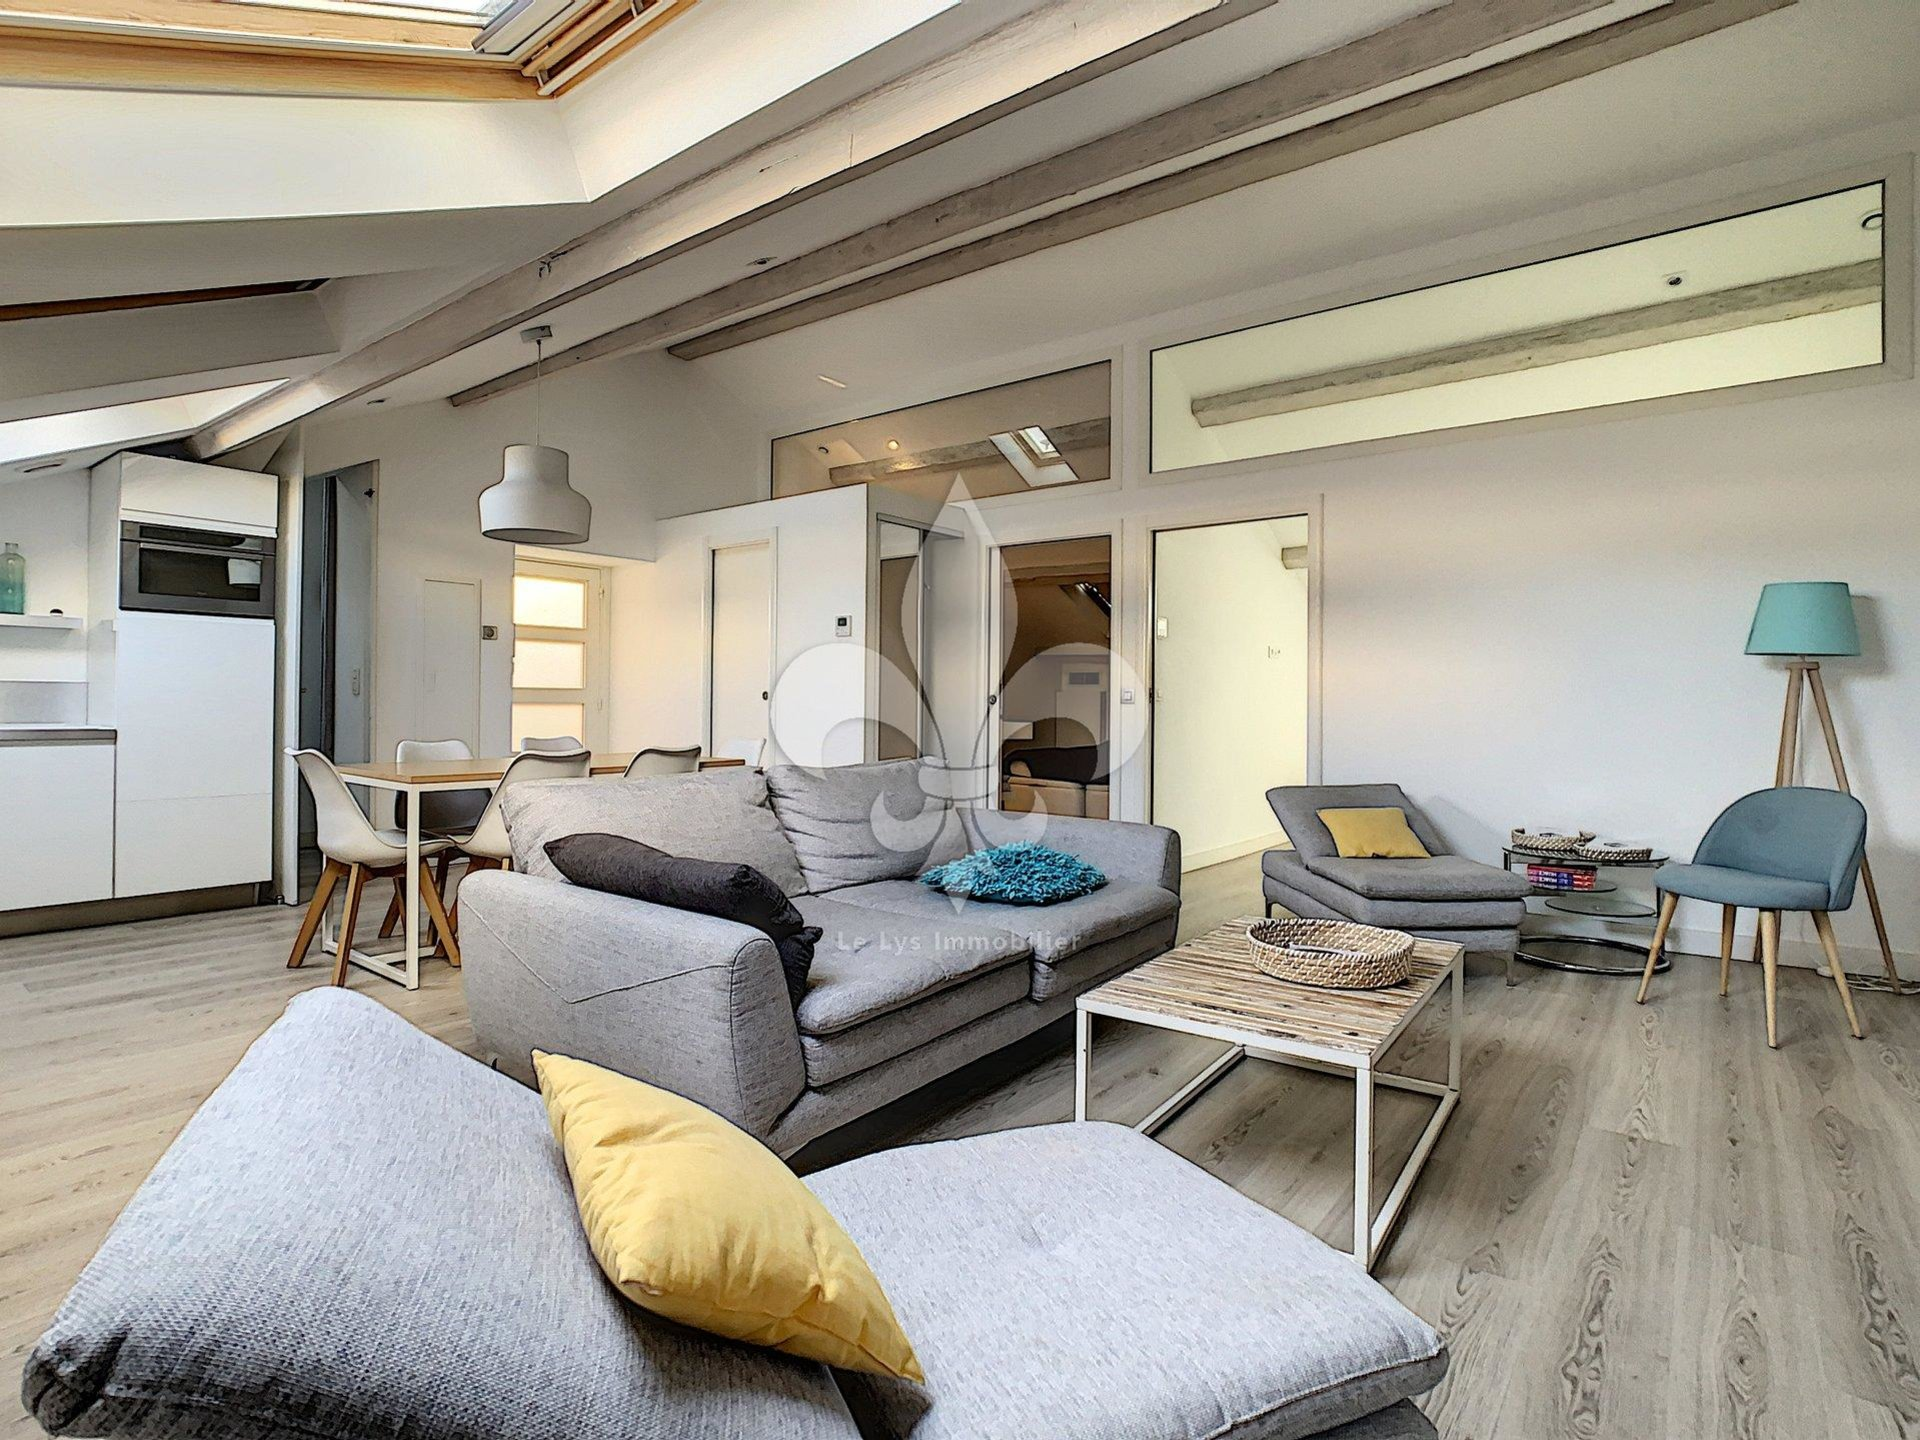 Cannes - Banane: 4 room apartment completely renovated on the top floor